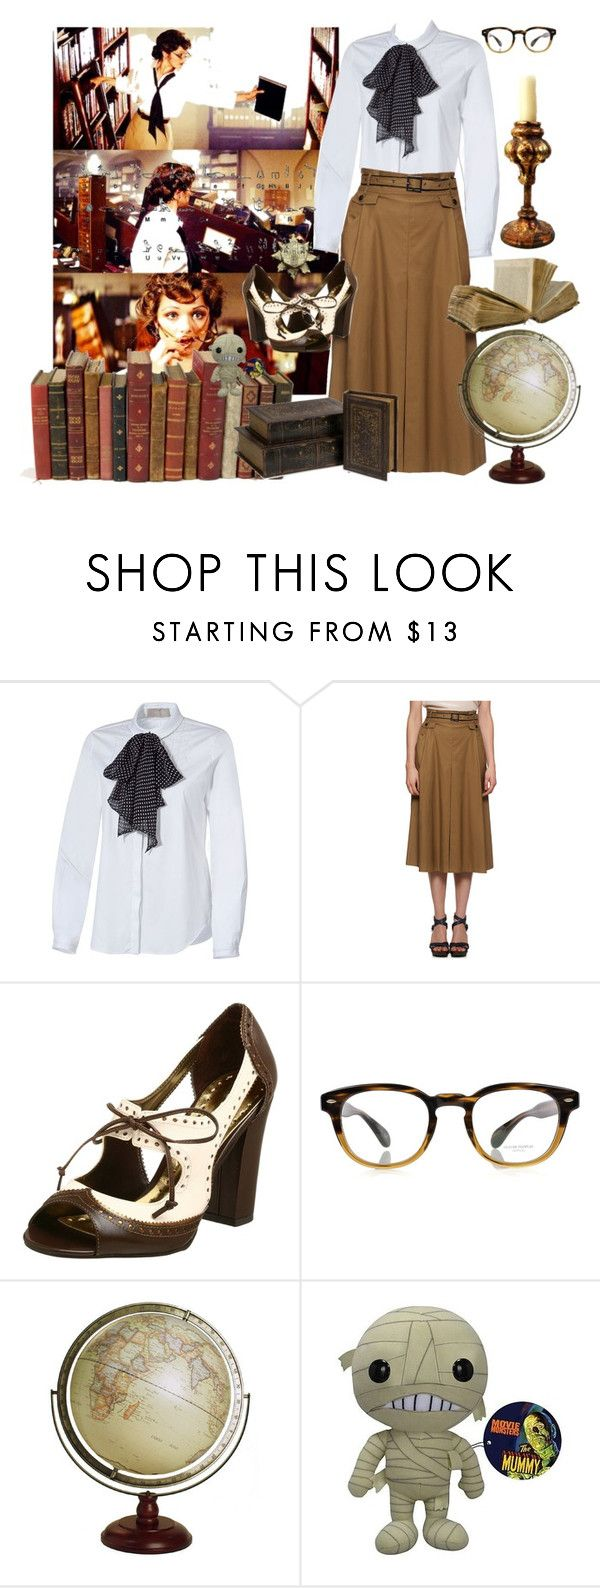 """The Mummy Evelyn ""Evy"" Carnahan Rachel Weisz"" by lilbailey ❤ liked on Polyvore featuring Rachel, Jason Wu, BCBGirls, Oliver Peoples, mummy, books, rachel weisz, ancient, evy and film"